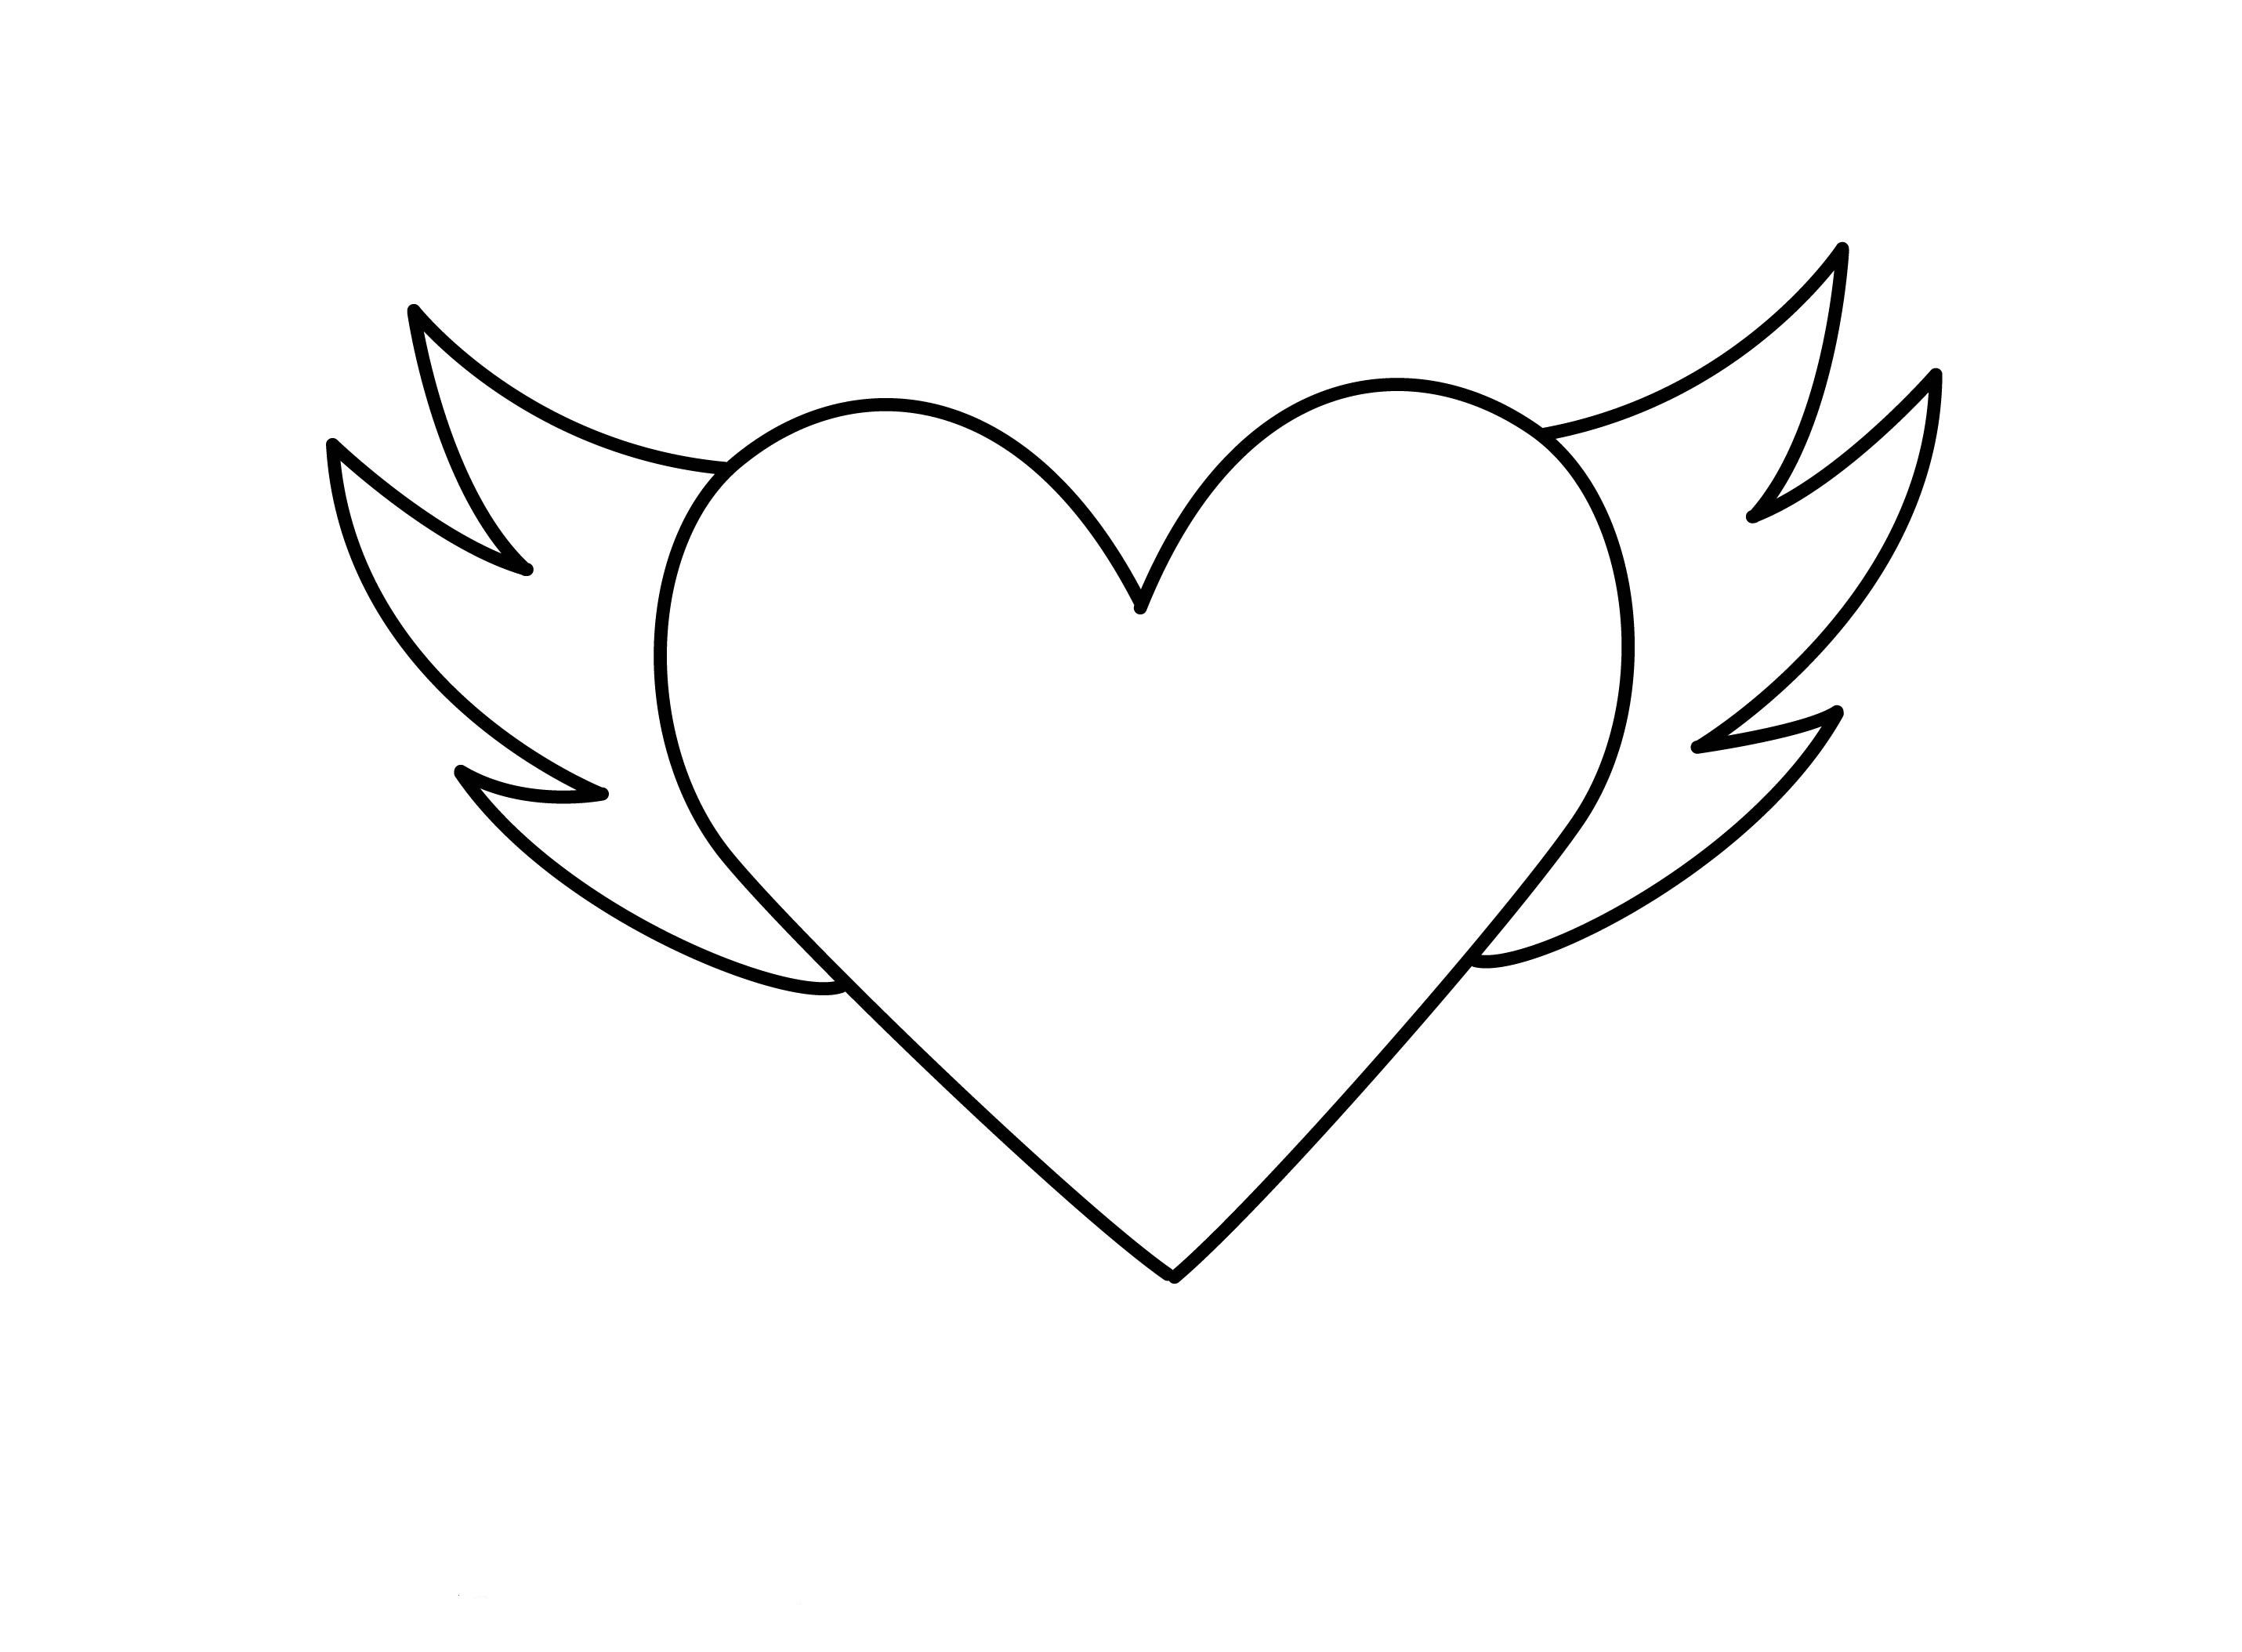 Heart Coloring Pages Heart Coloring Pages Shape Coloring Pages